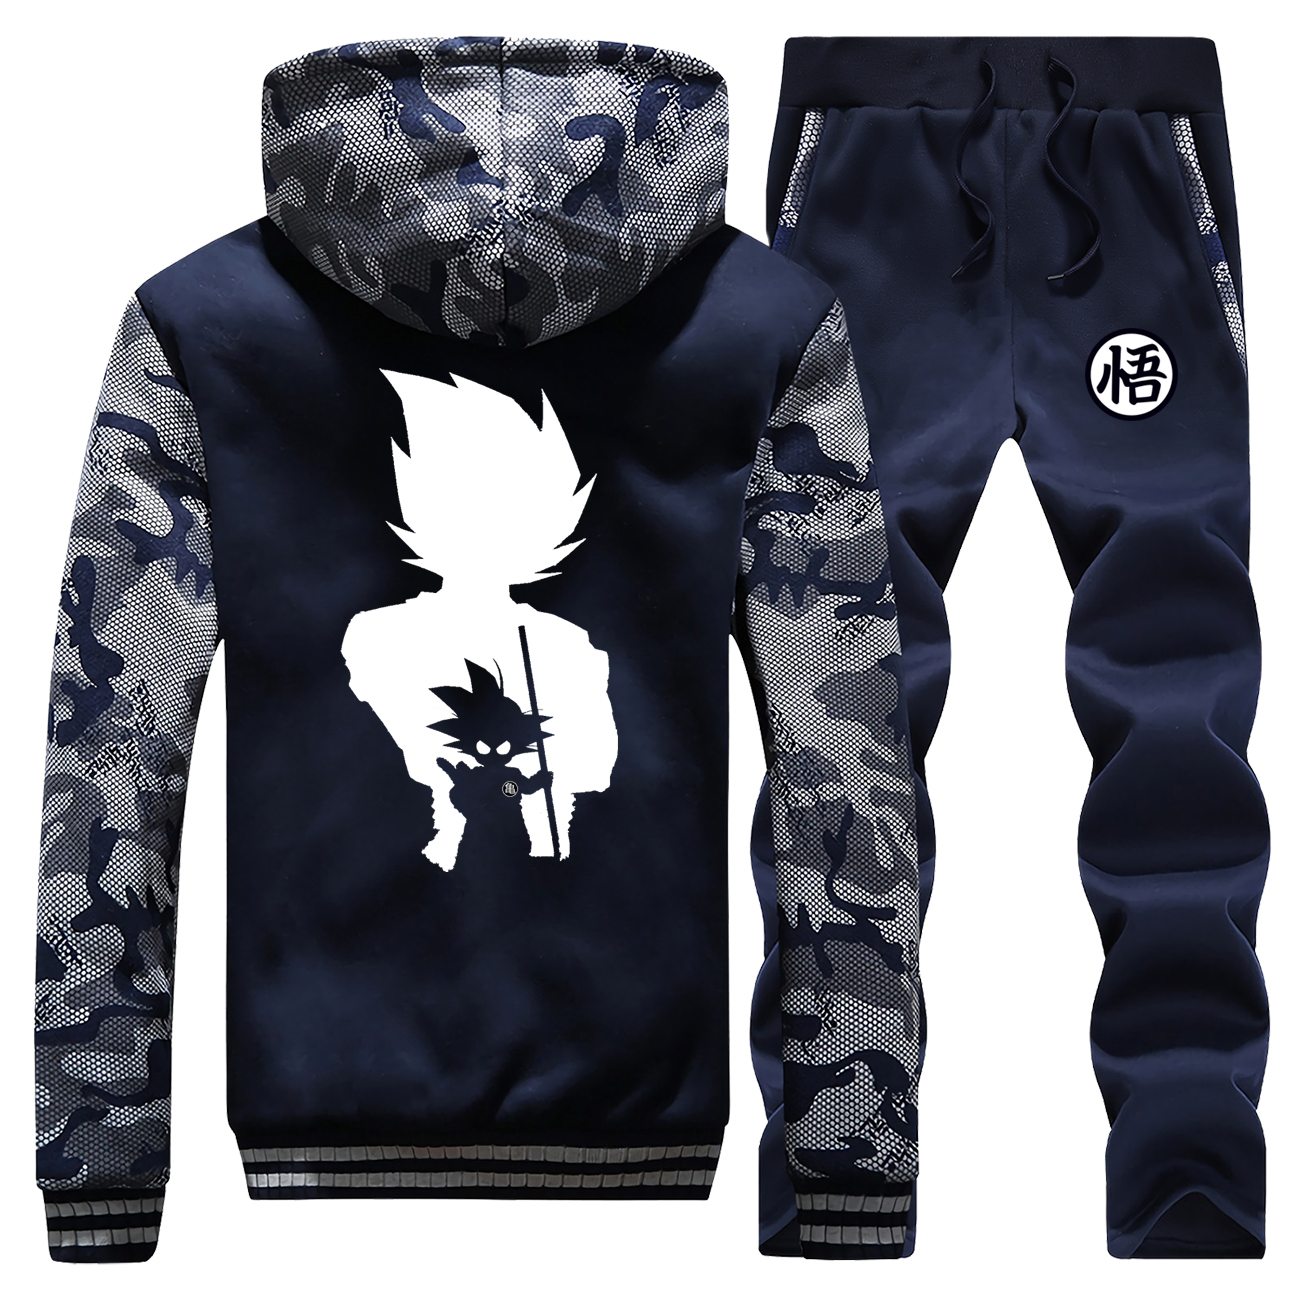 Warm Mens Dragon Ball Set Winter Casual Tracksuit Men Hoodies Sets Brand Men's 2Pcs Thick Outerwear+Pants Suit Male 2019 New